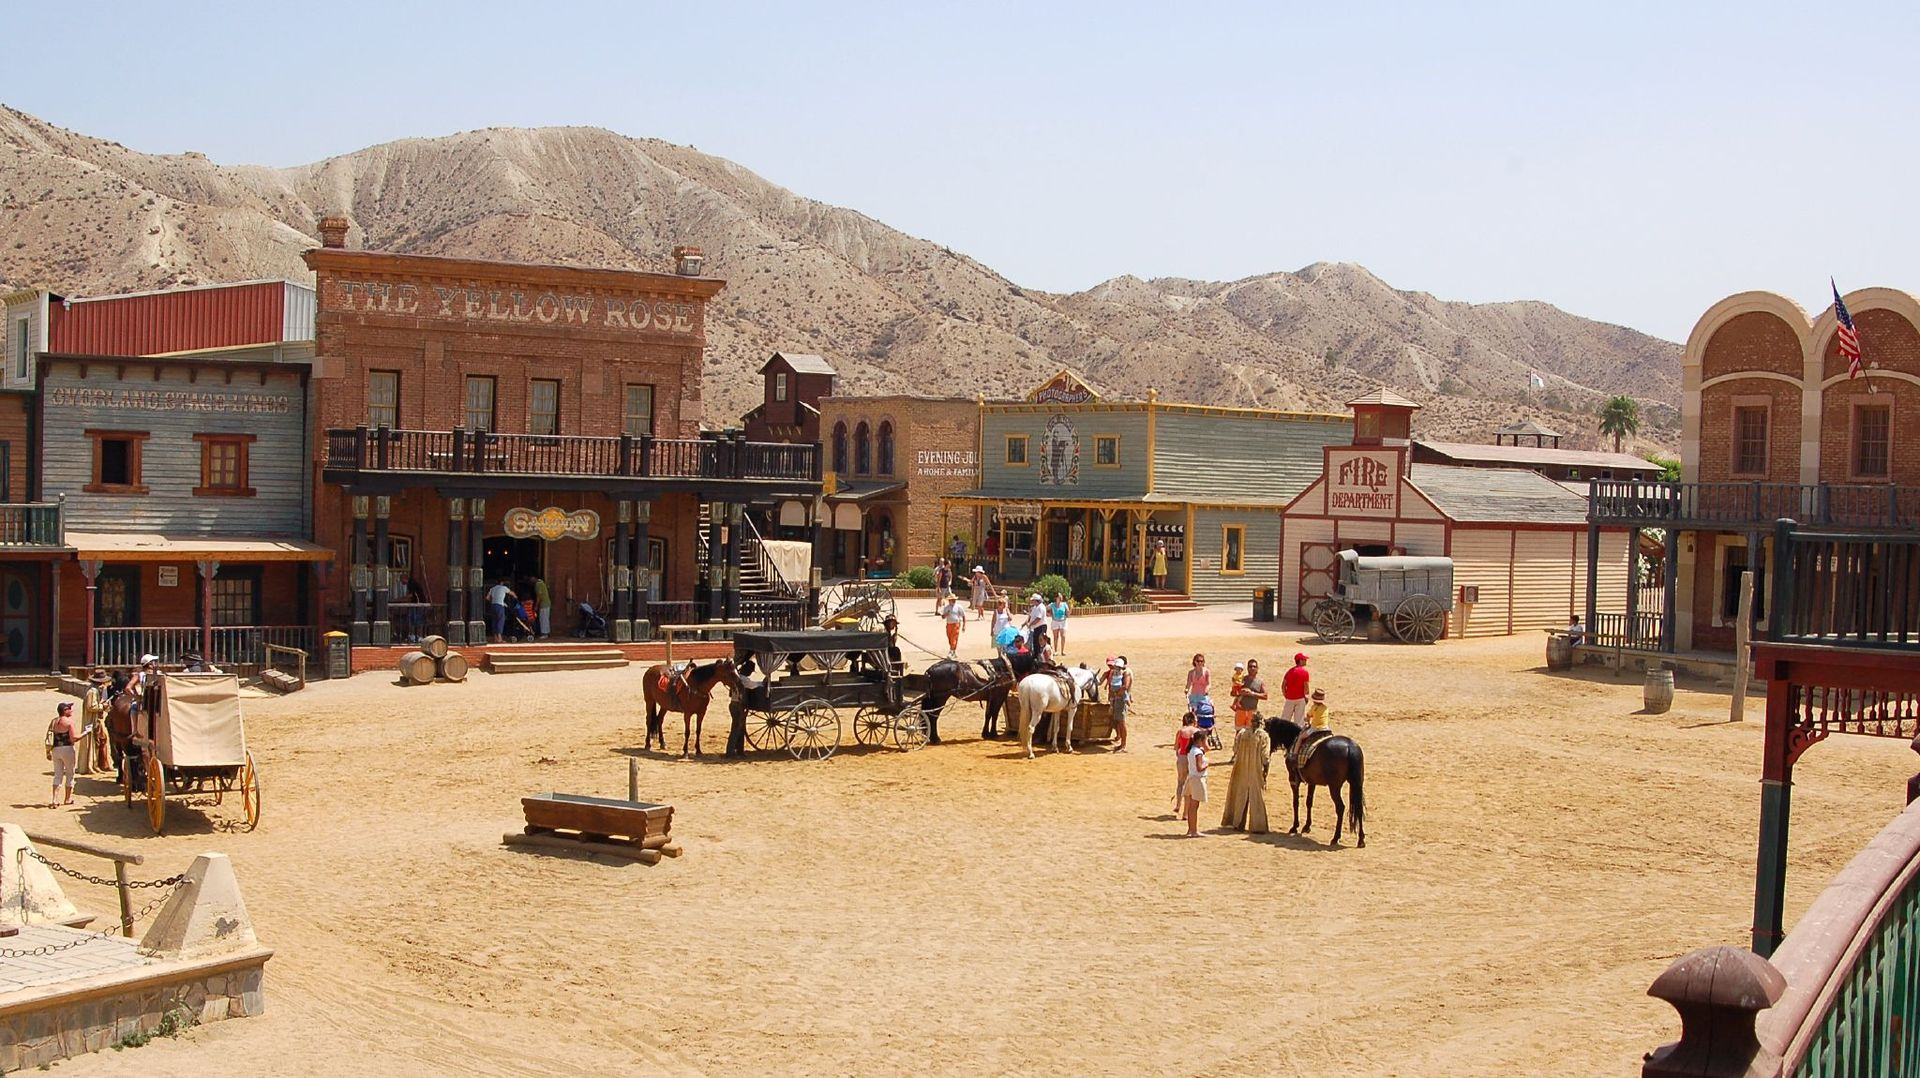 Oasys - Wild West styled theme park, near the town of Tabernas in the province of Almería, Andalusia.